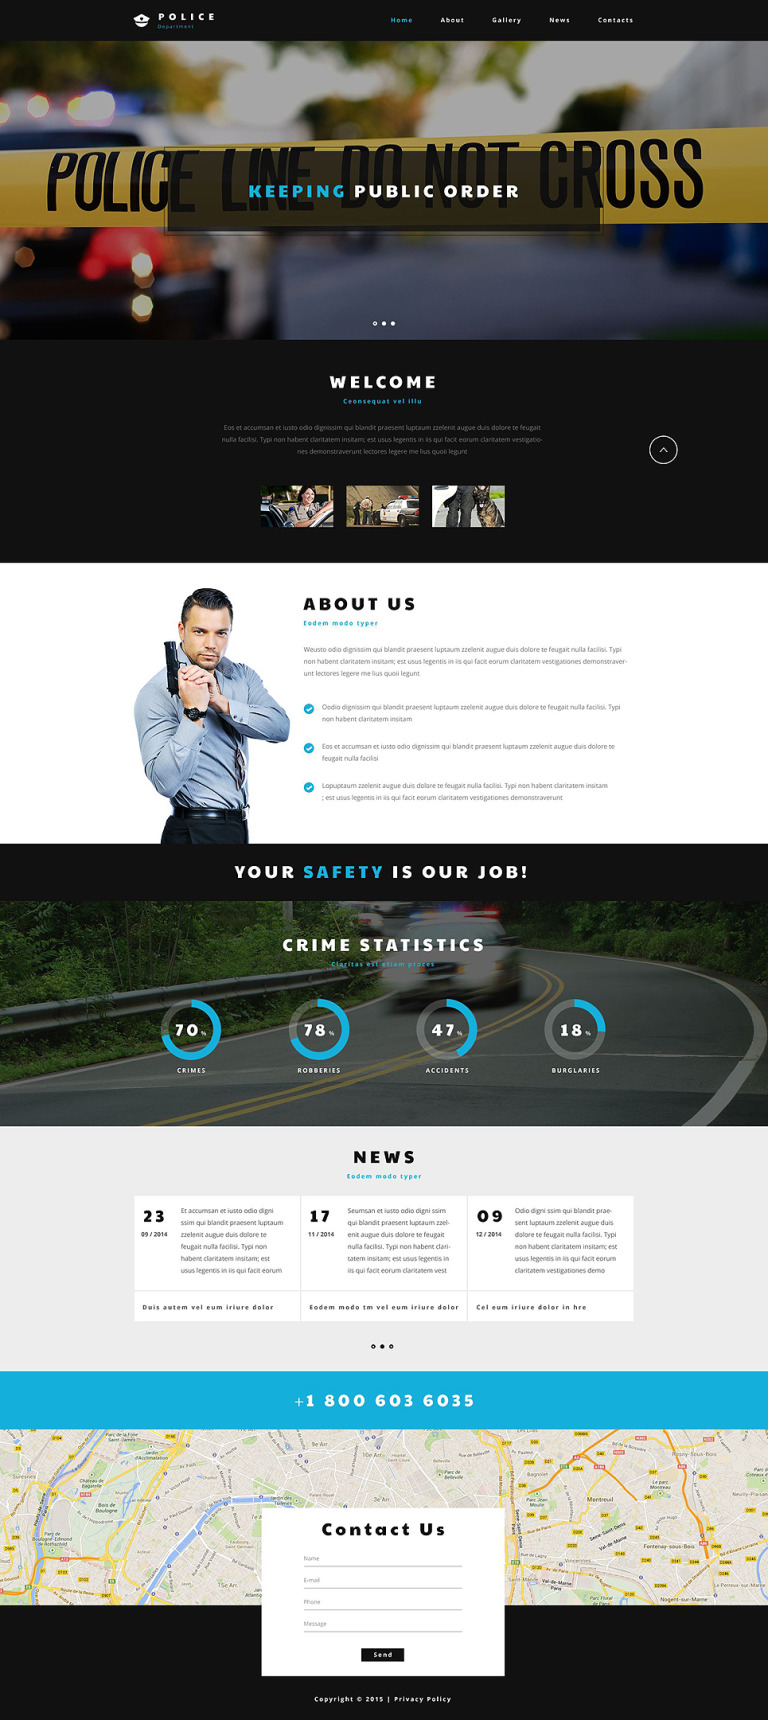 Police Entity Website Template New Screenshots BIG